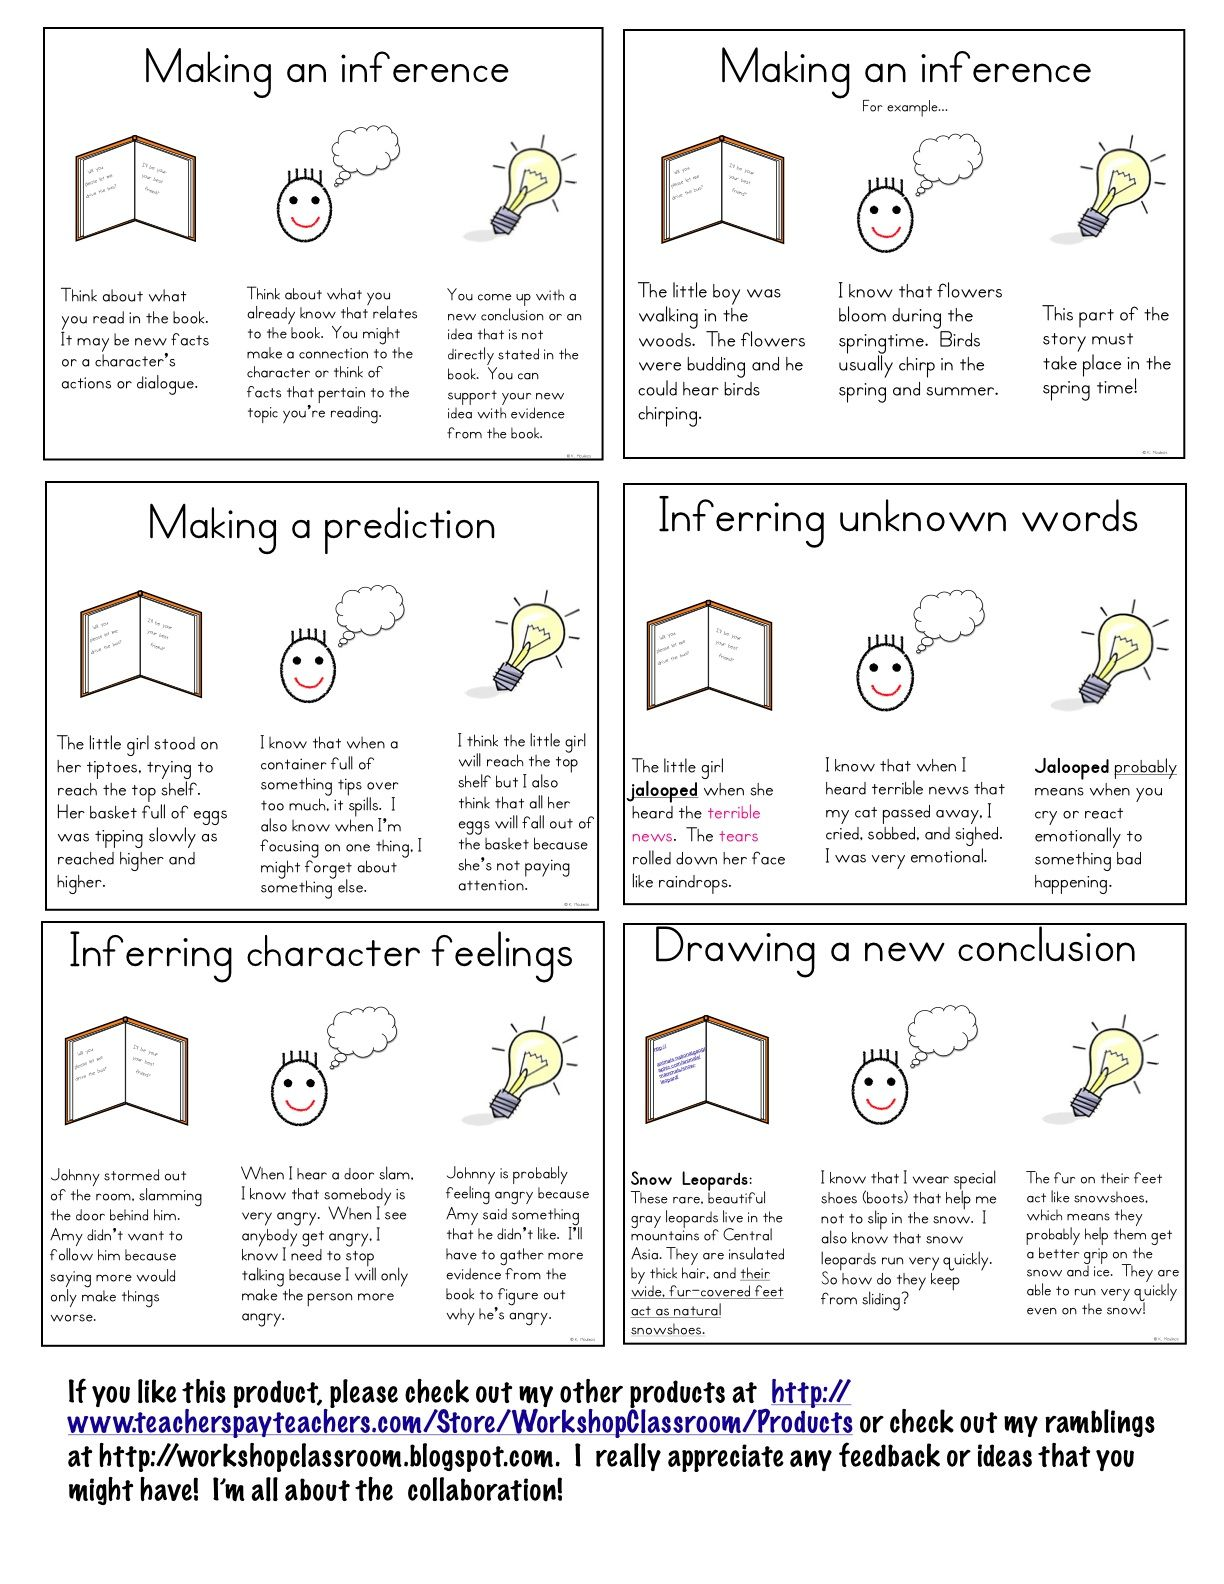 Free Worksheet Inferencing Worksheets 5th Grade 17 best images about inferencing on pinterest graphic organizers beautiful artwork and charts